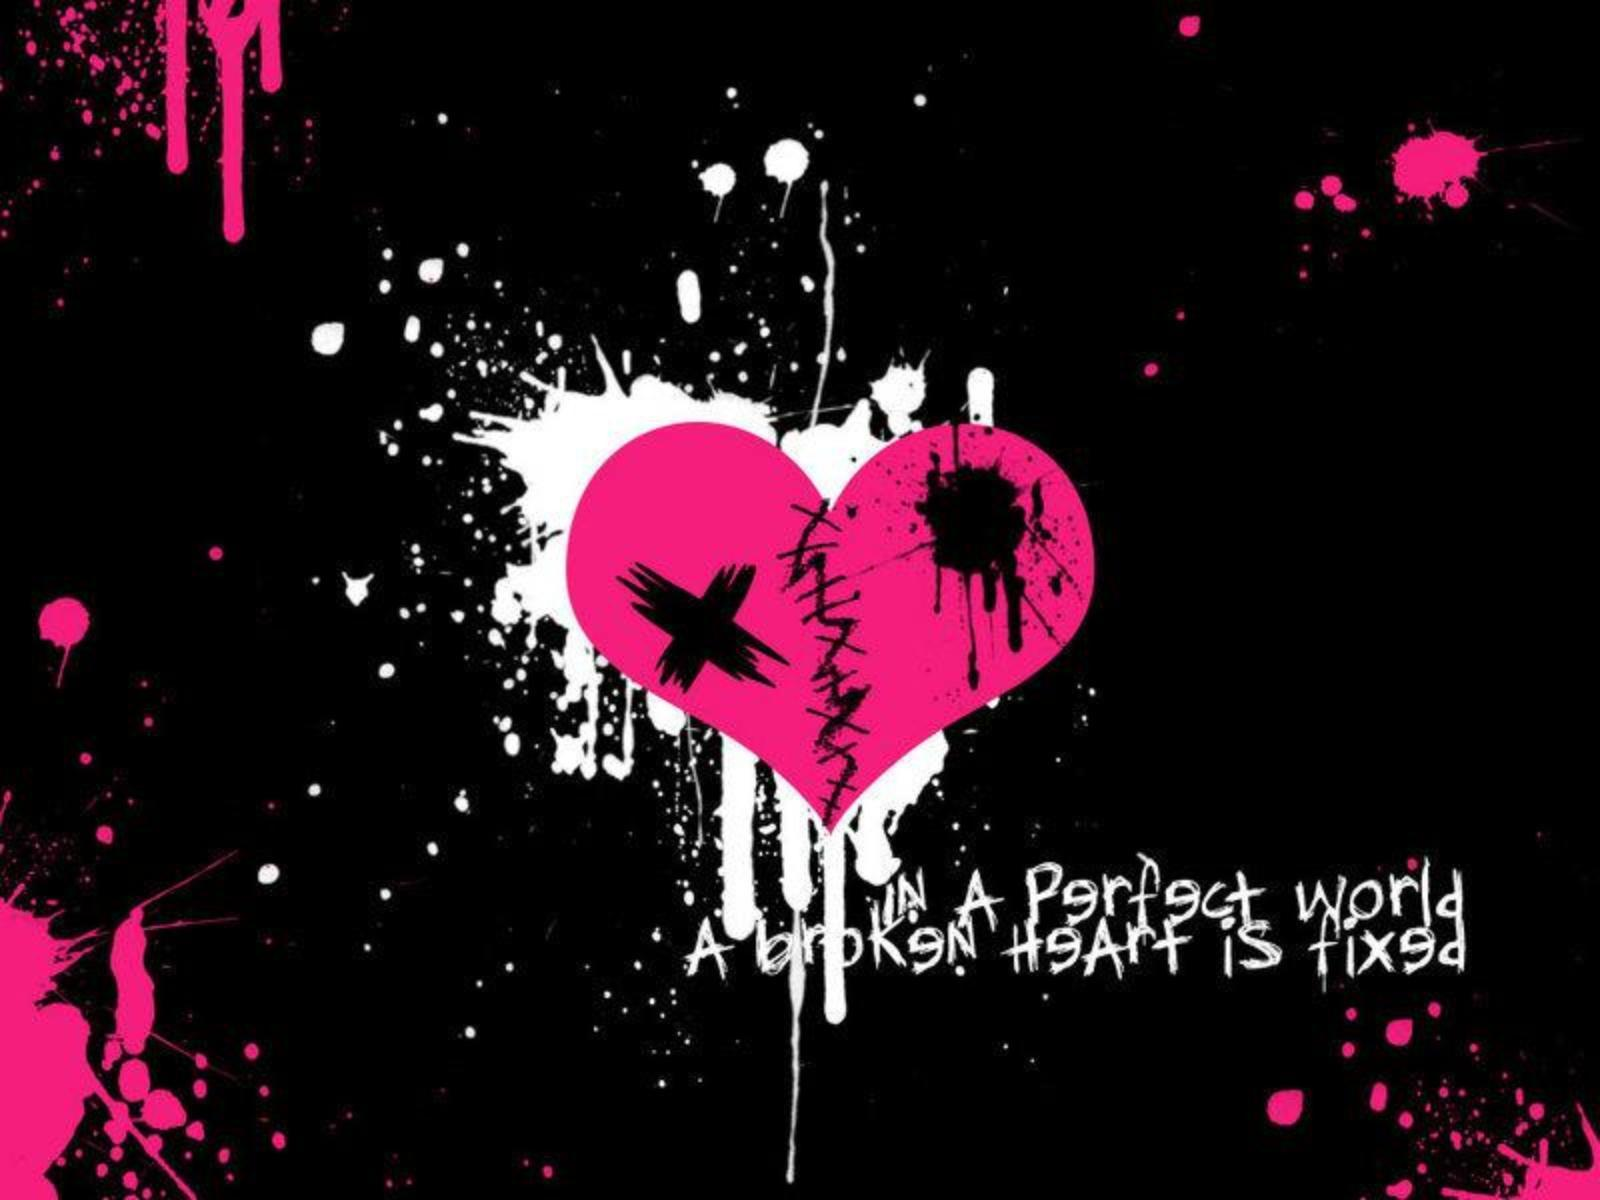 Hd wallpaper emo - Emo Heart Exclusive Hd Wallpapers